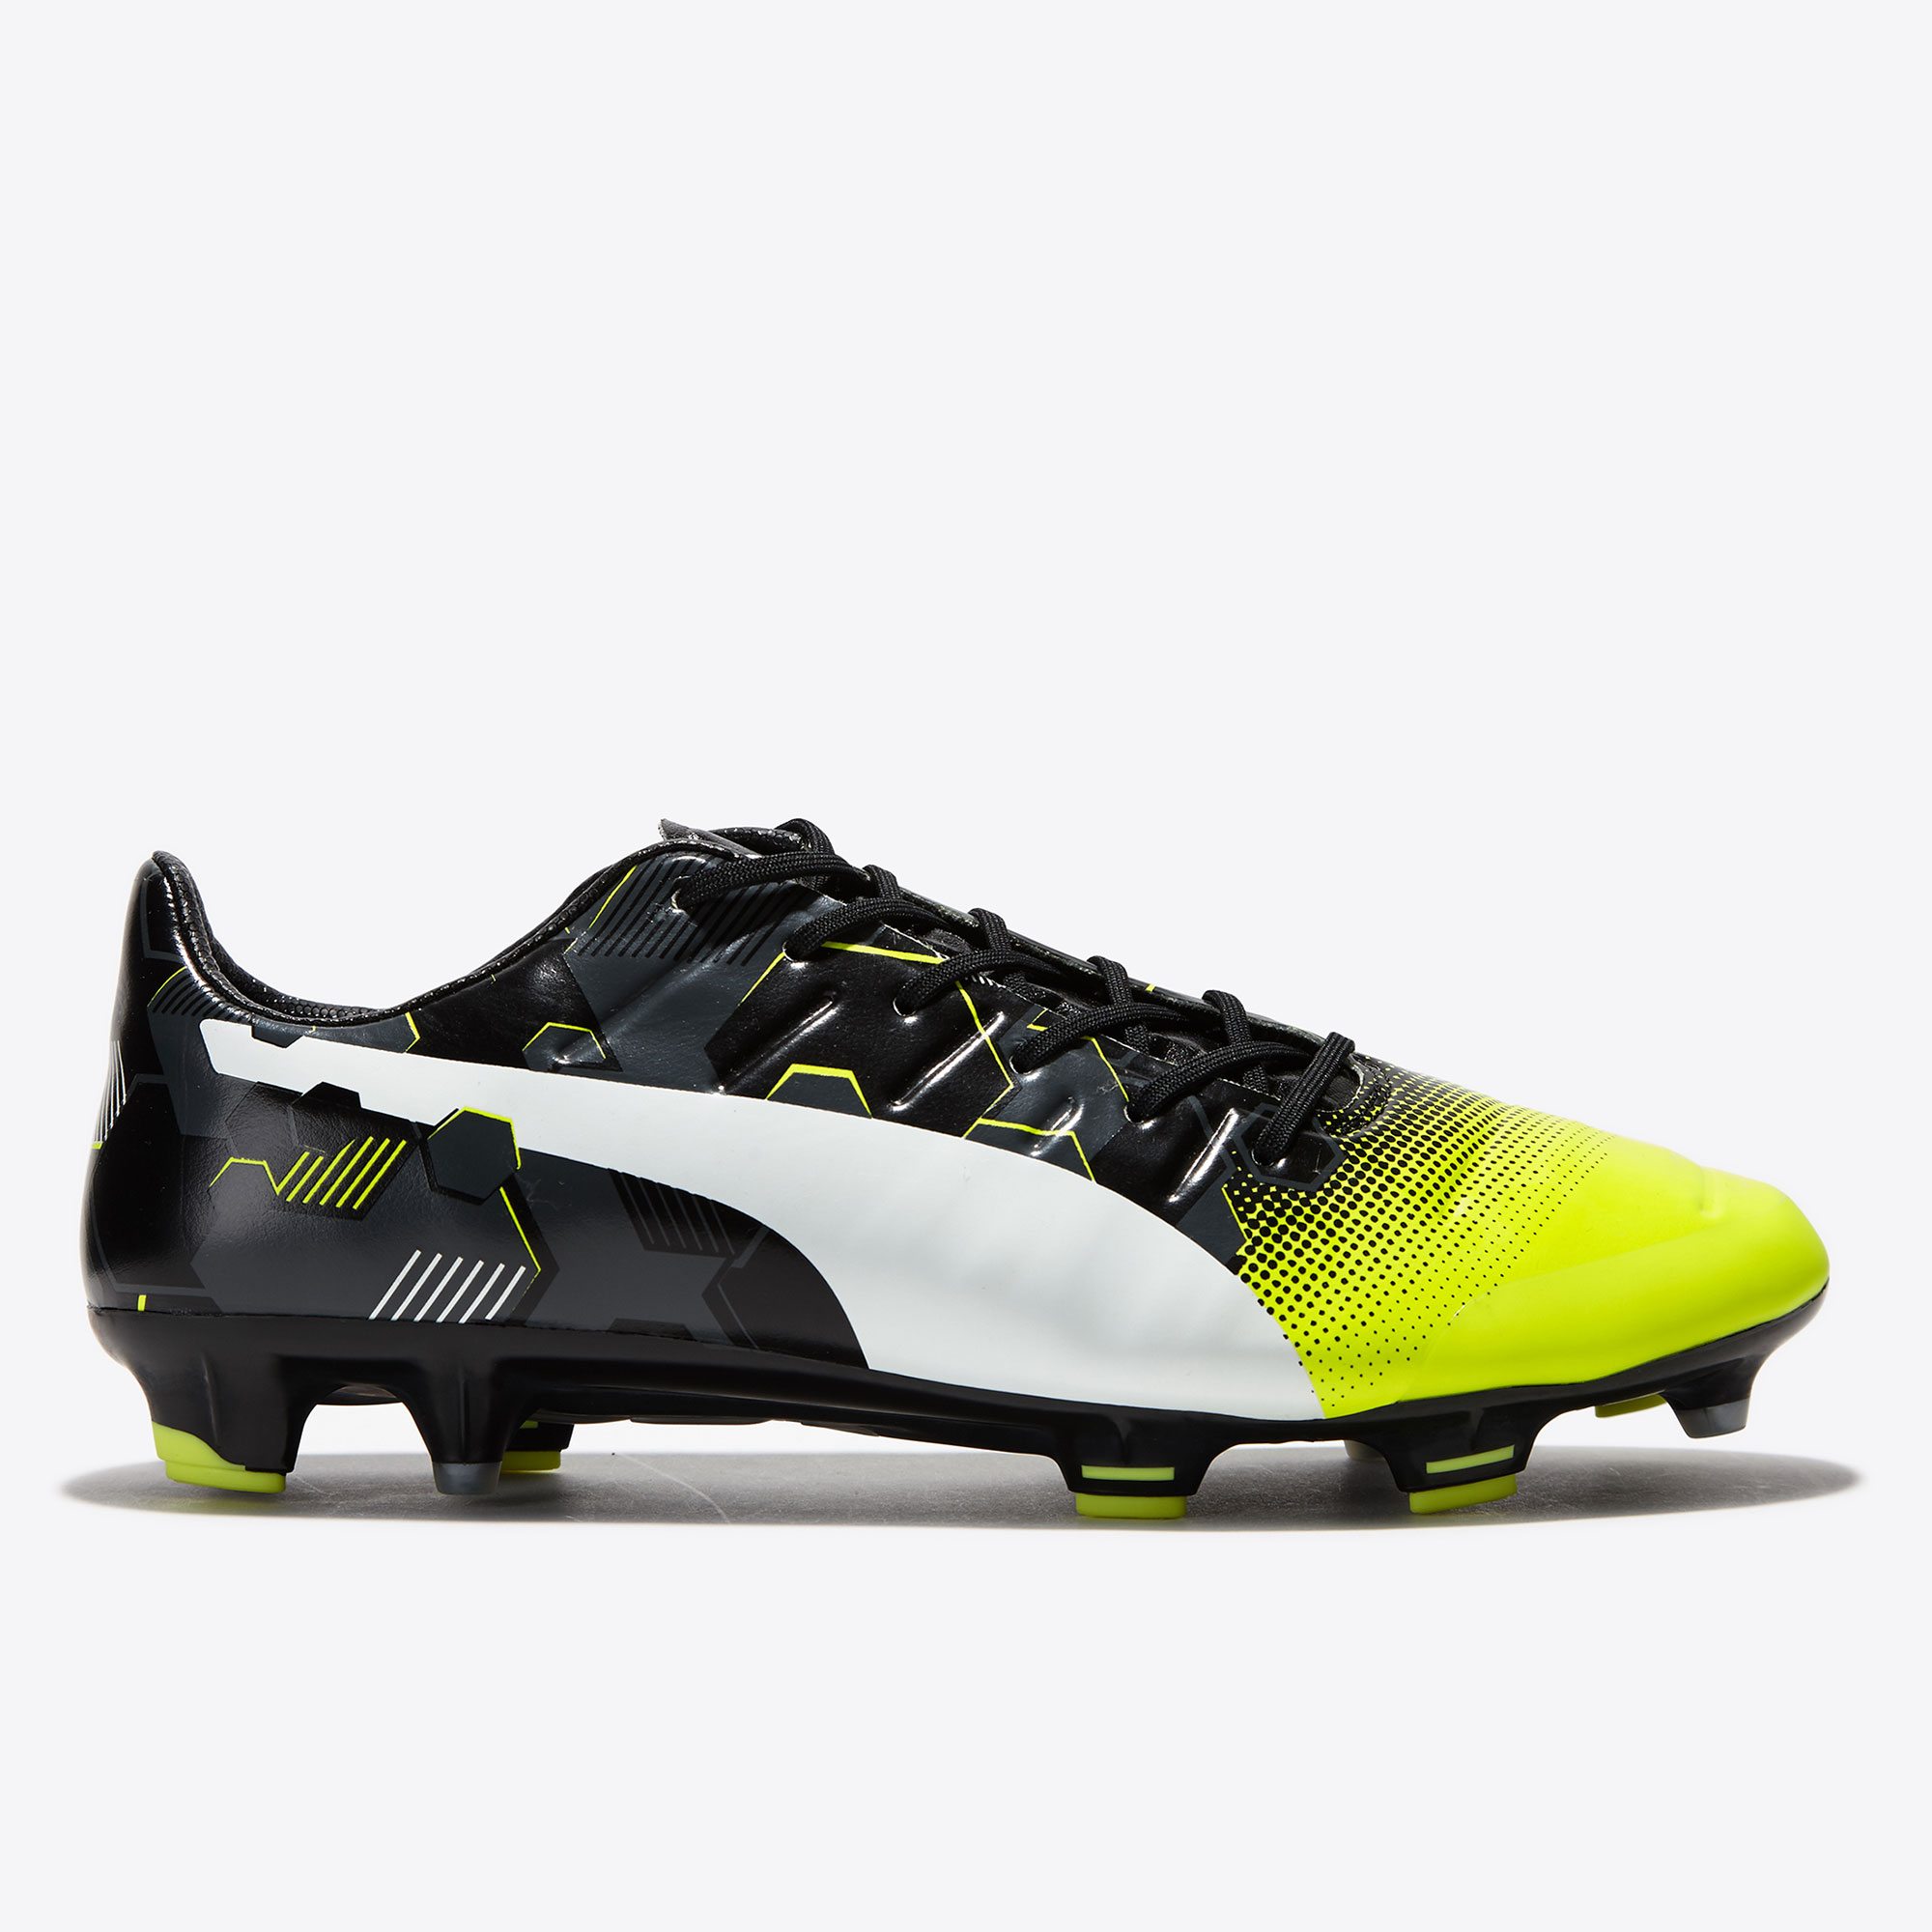 Puma evoPOWER 1.3 Graphic FG Safety Yellow/W